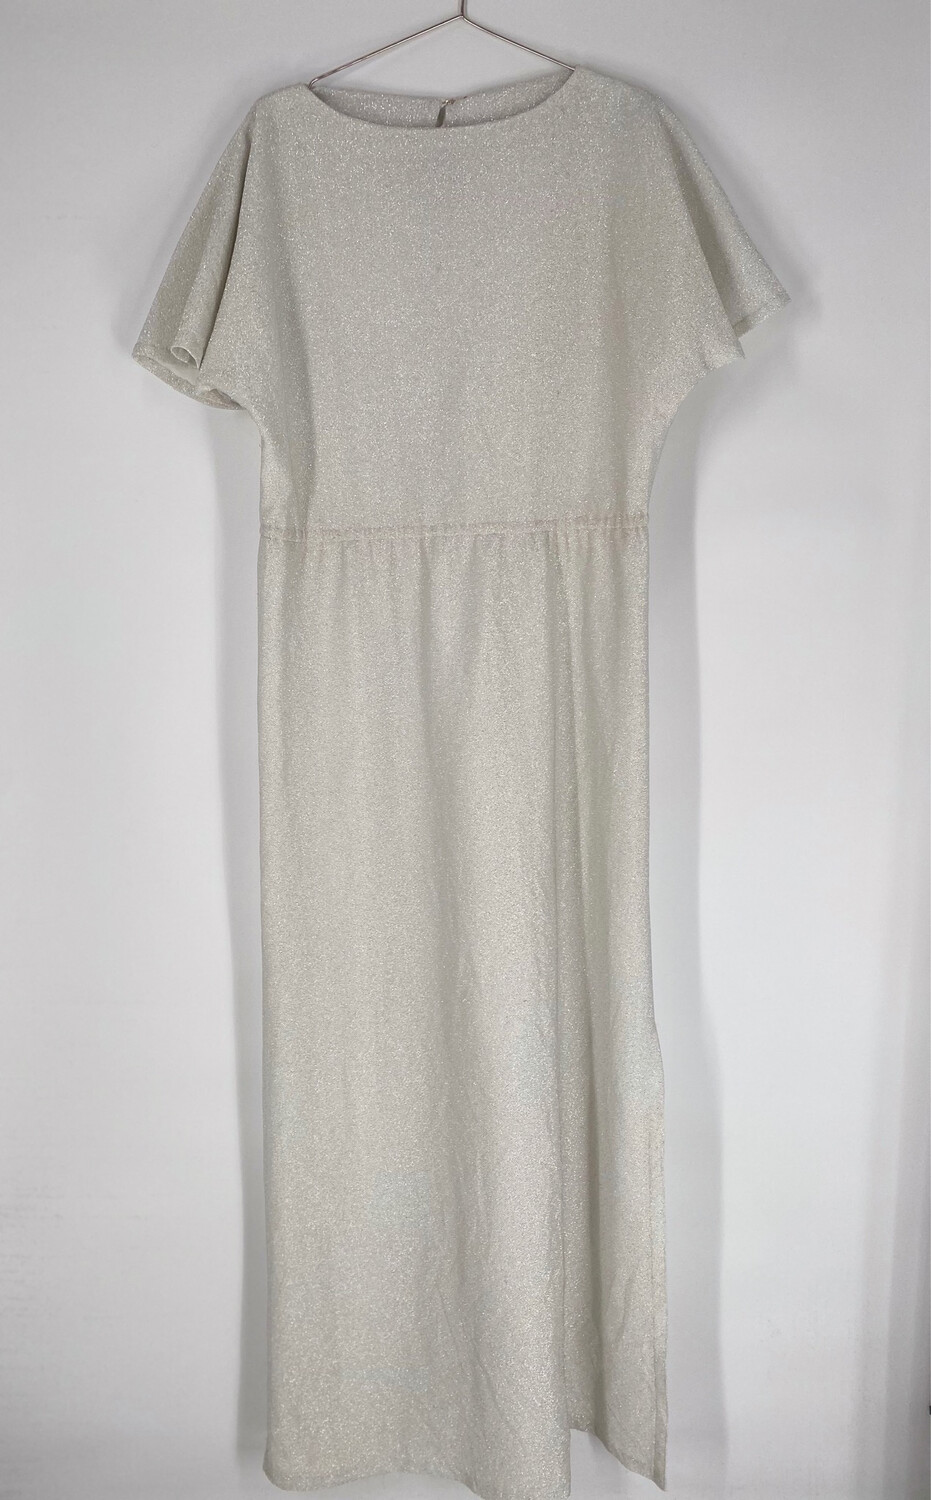 Grey Sparkle Dress Size L